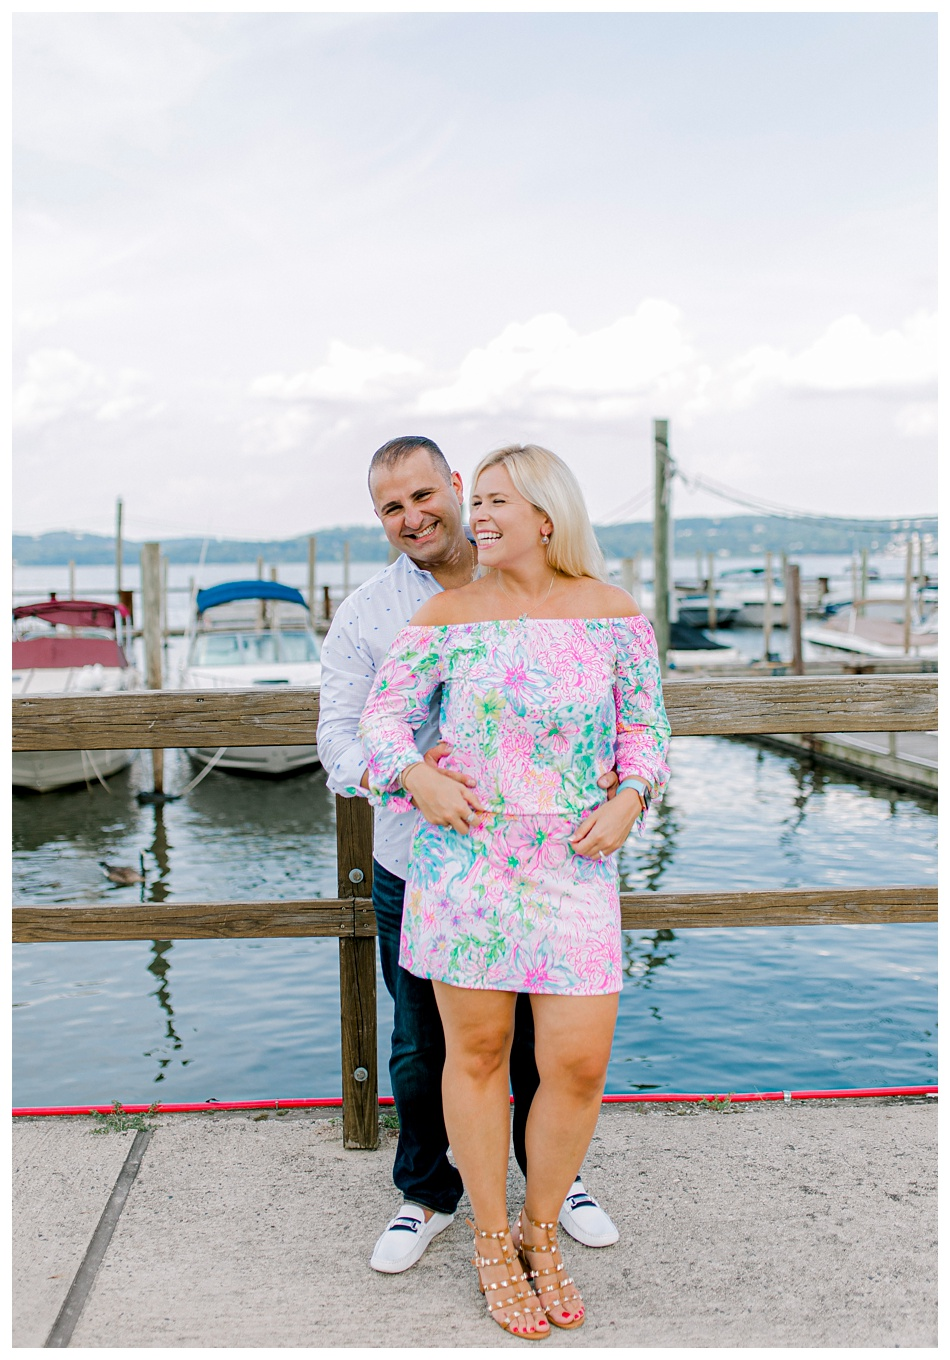 new-jersey-proposal-photographer-engagement-boat-dock